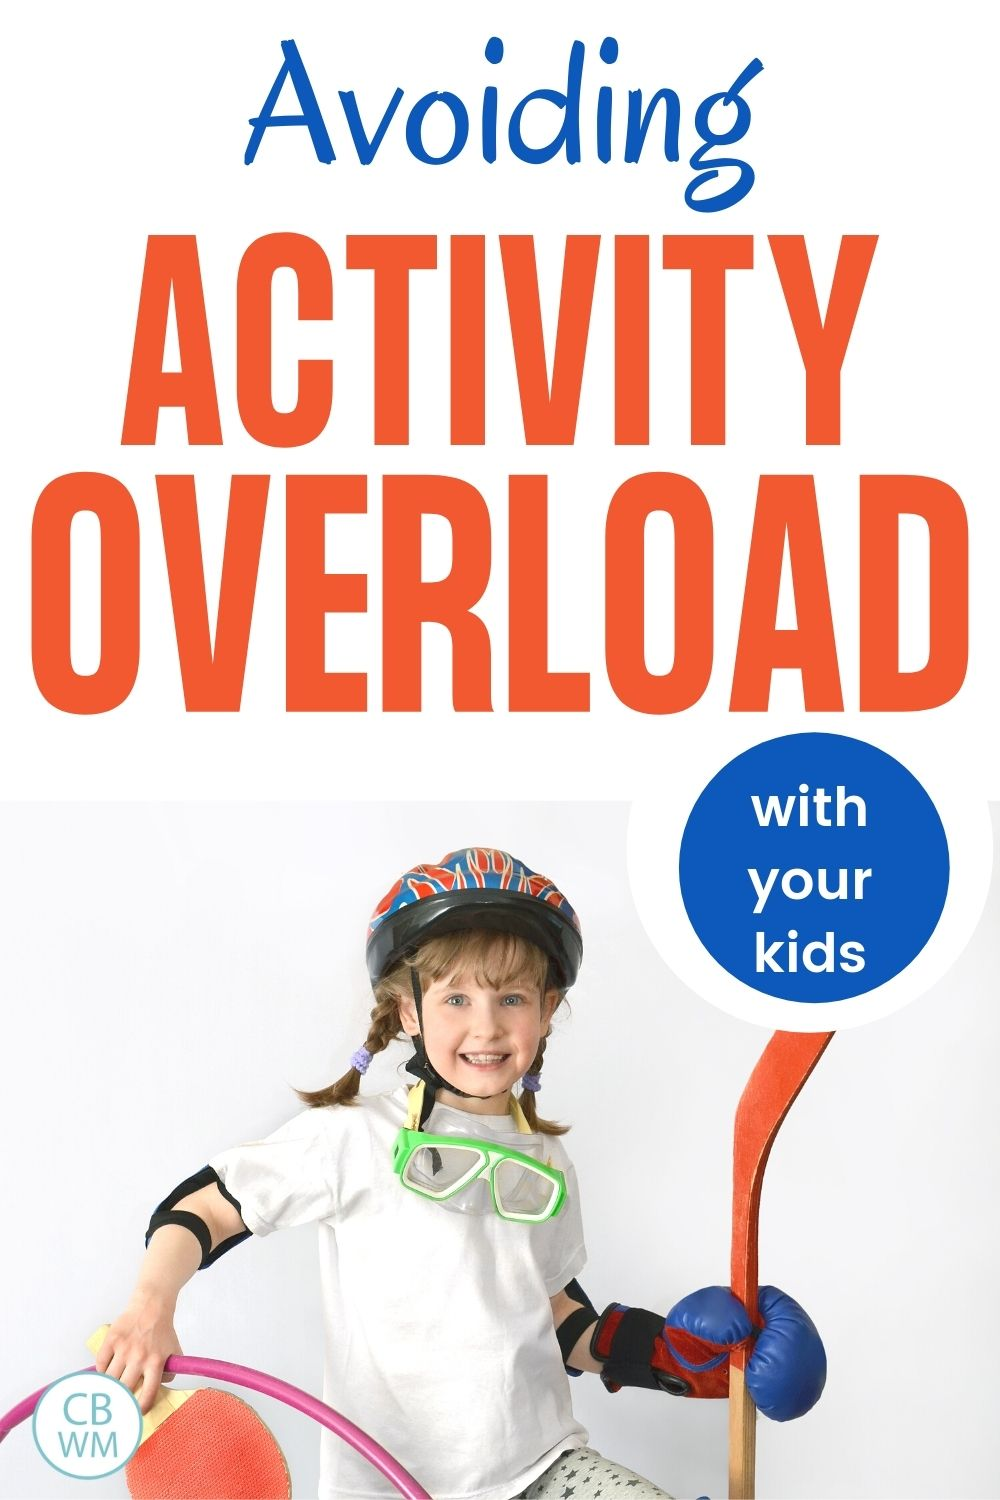 Avoiding activity overload with your kids pinnable image